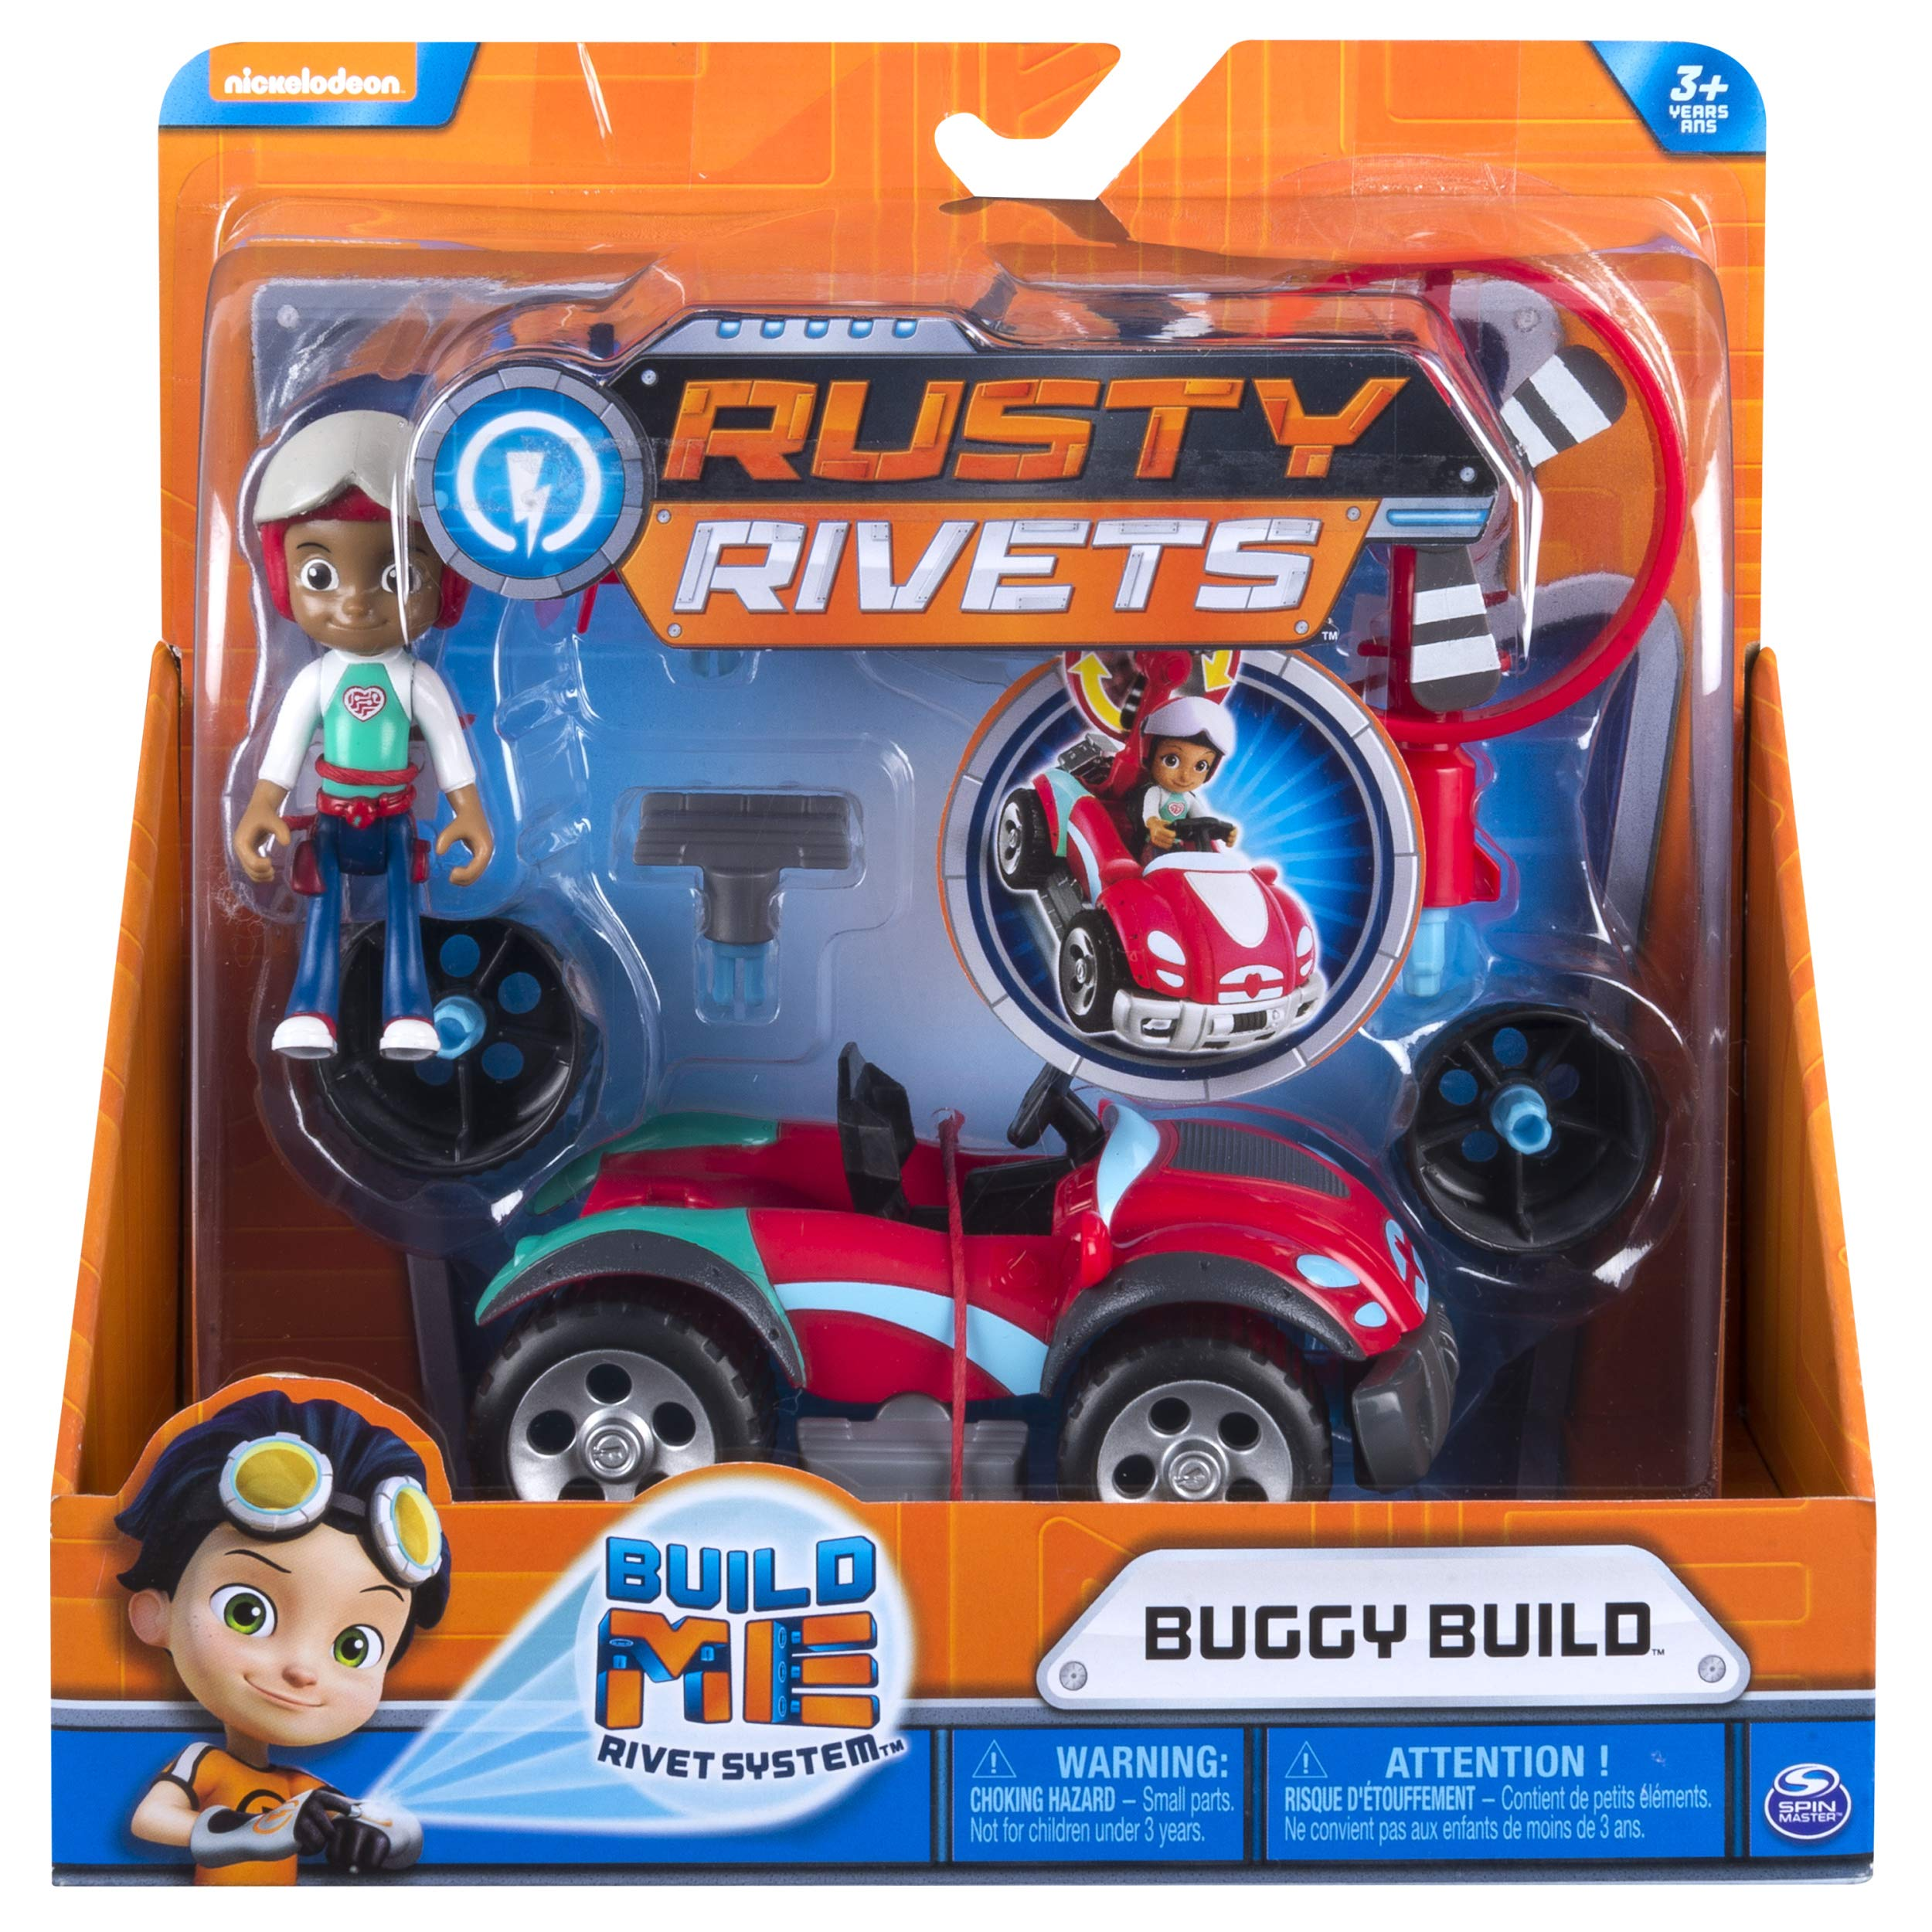 Rusty Rivets - Ruby's Buggy Build